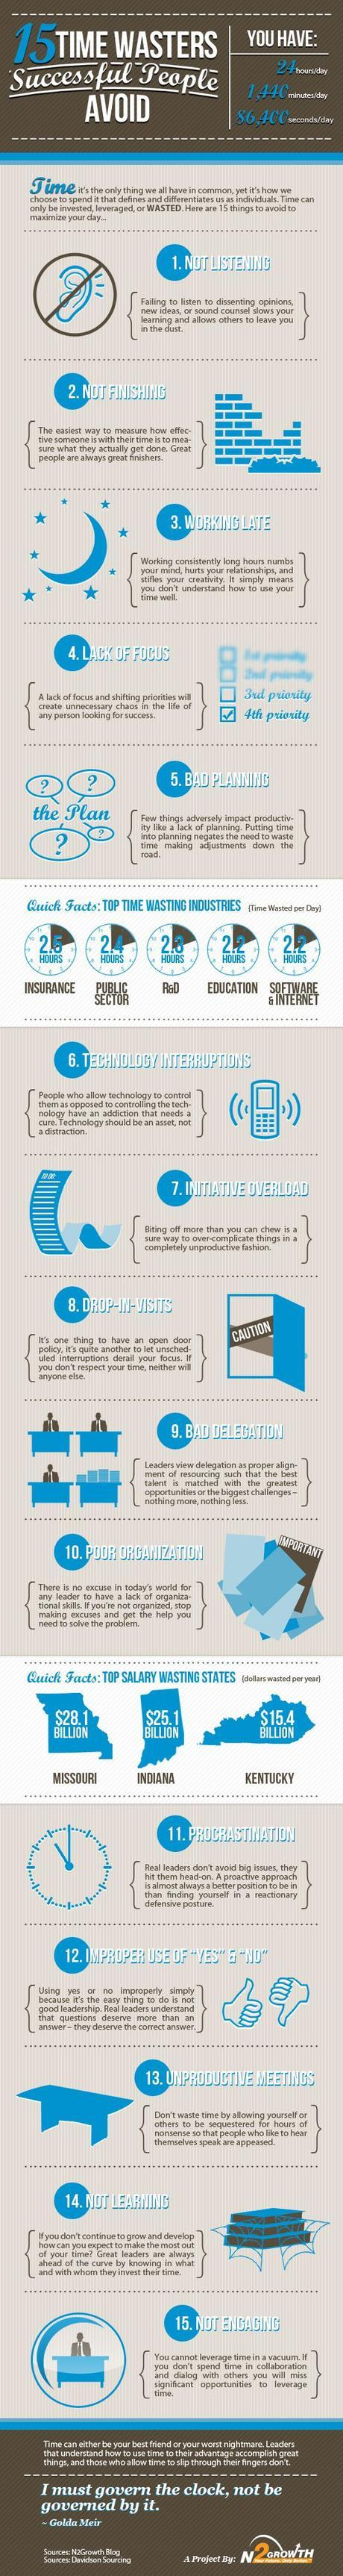 Stay Away From Them: Top 15 Types Of Time Wasters You Should Avoid [Infographic]